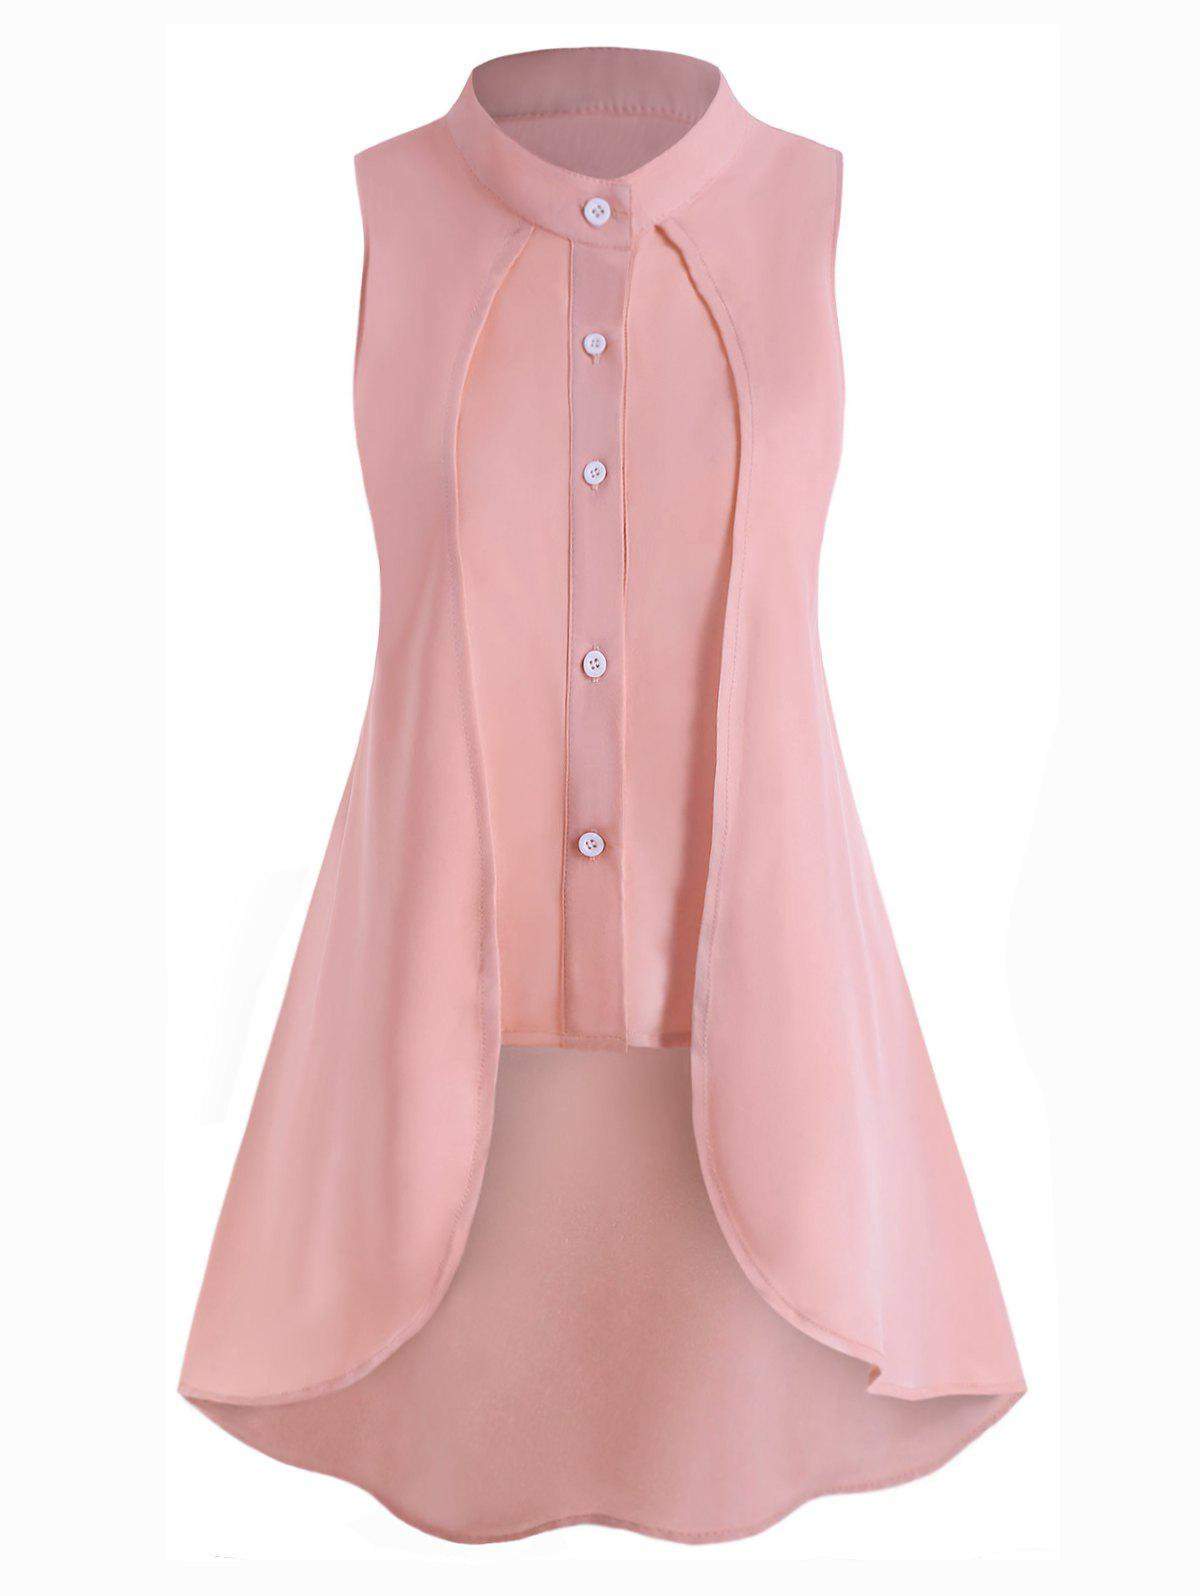 Plus Size Overlay High Low Sleeveless Blouse - PINK 1X